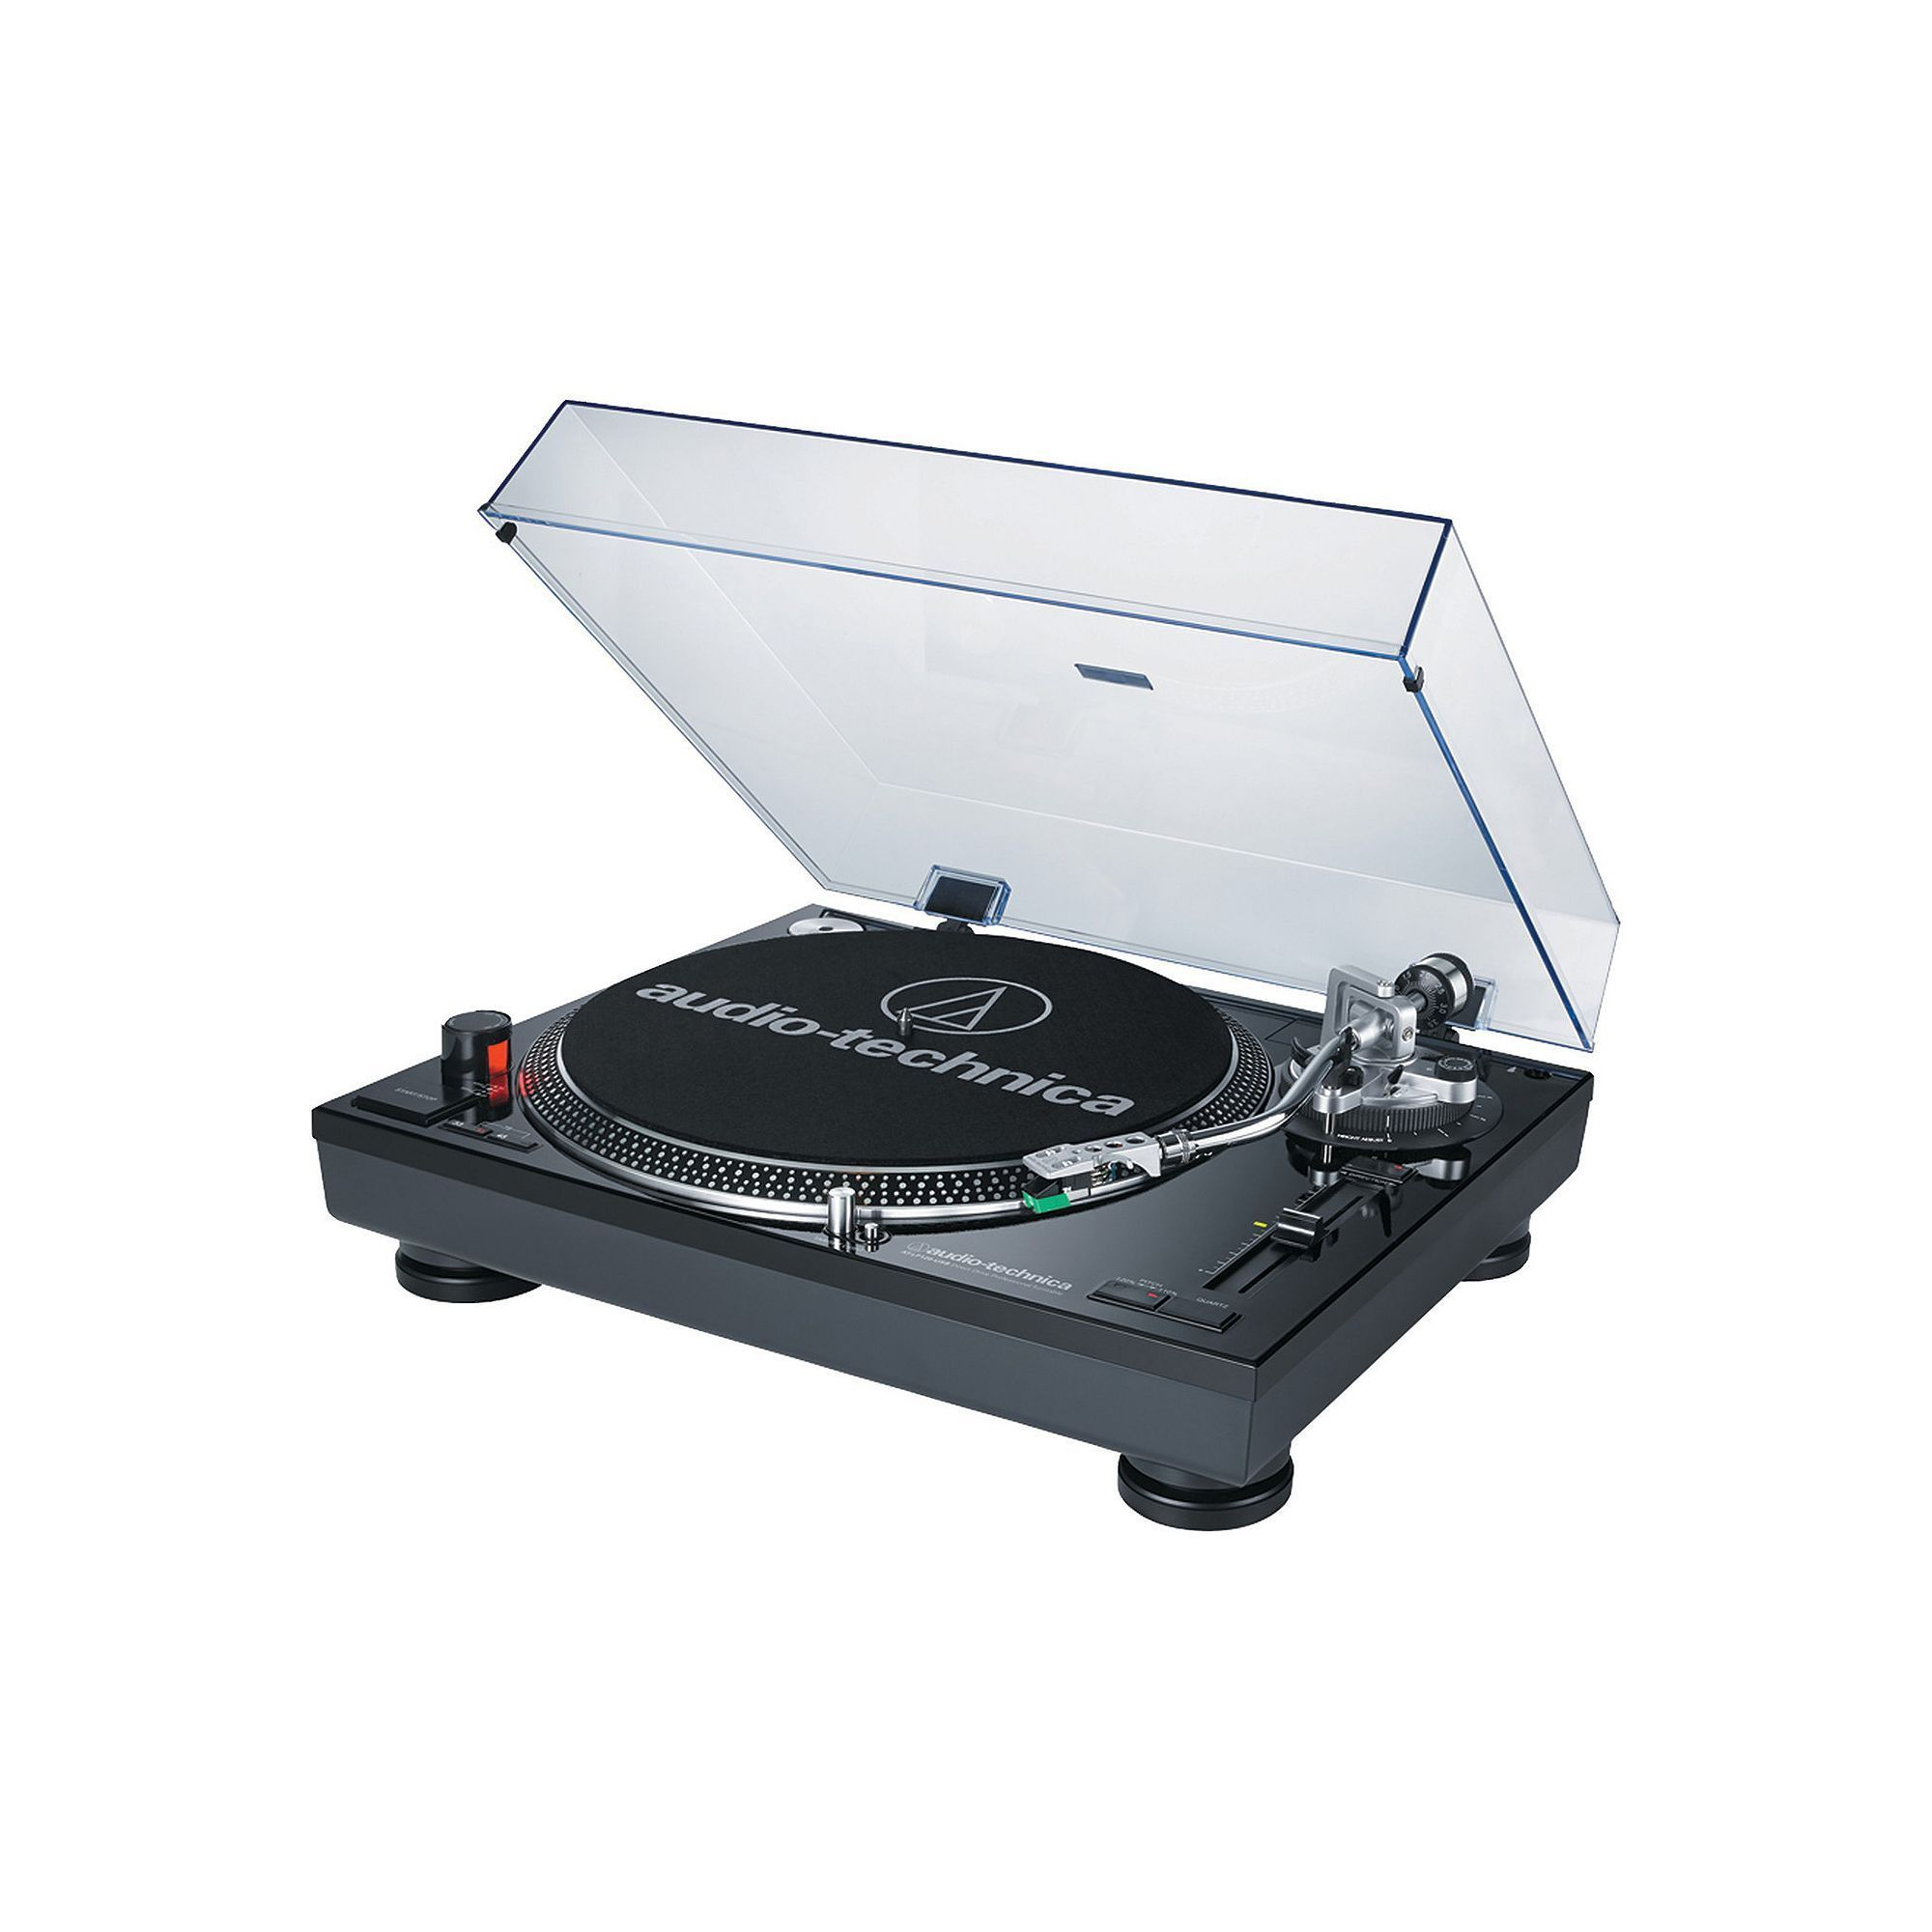 audio technica audio technica direct drive professional turntable rh pinterest com